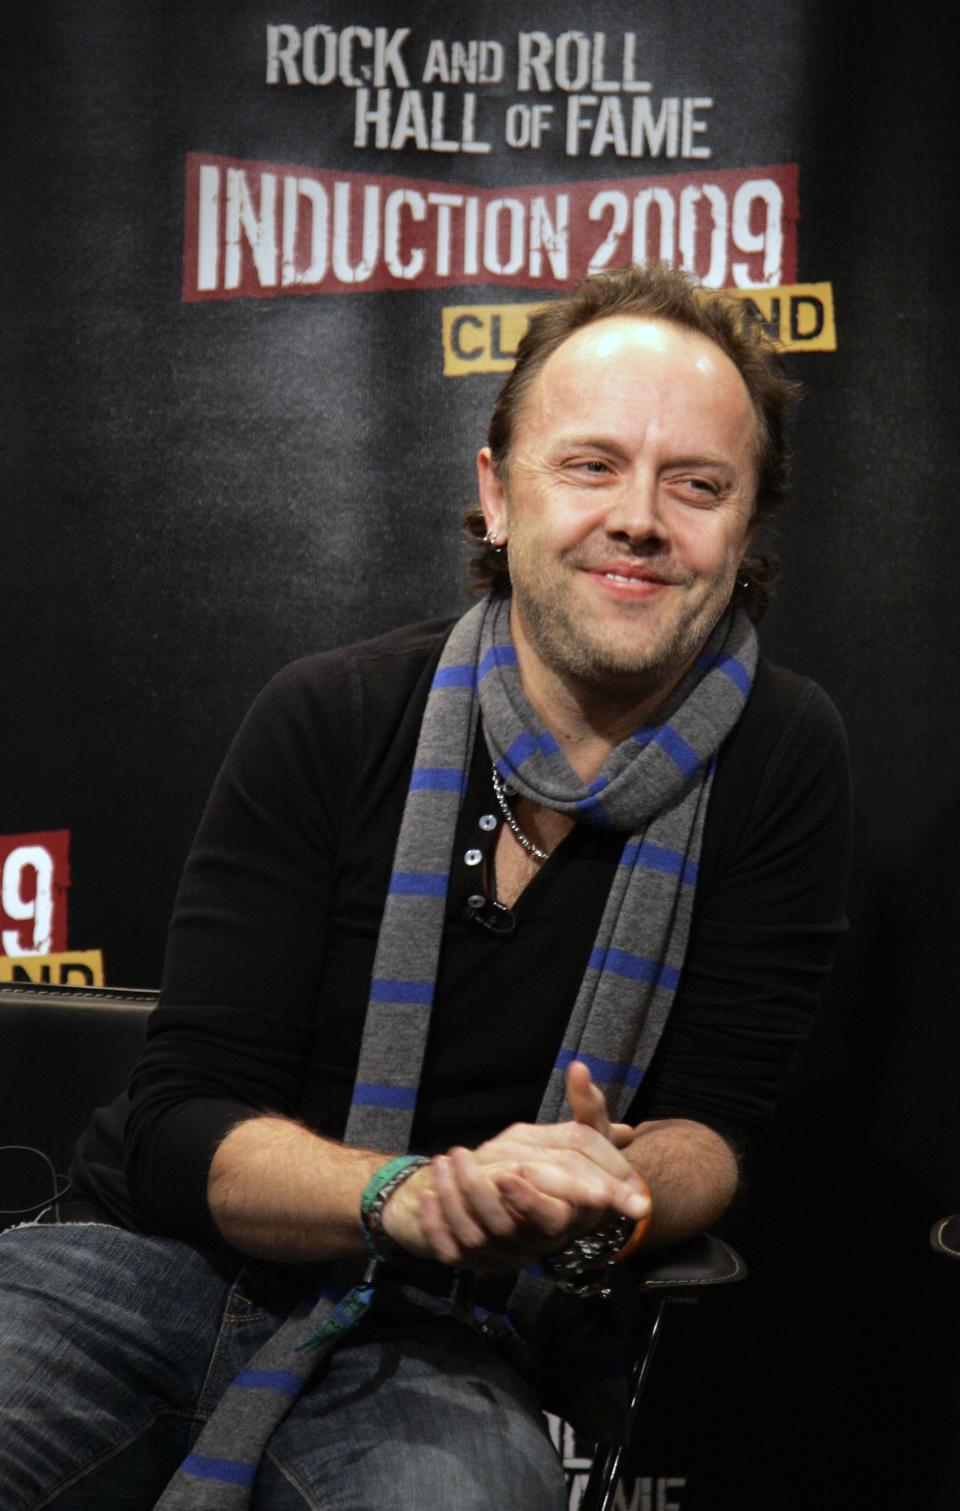 FILE - This Jan. 14, 2009 file photo shows Lars Ulrich of the band Metallica during a news conference in New York after it was announced that Metallica will be inducted into the Rock and Roll Hall of Fame. (AP Photo/Jeff Christensen, file)